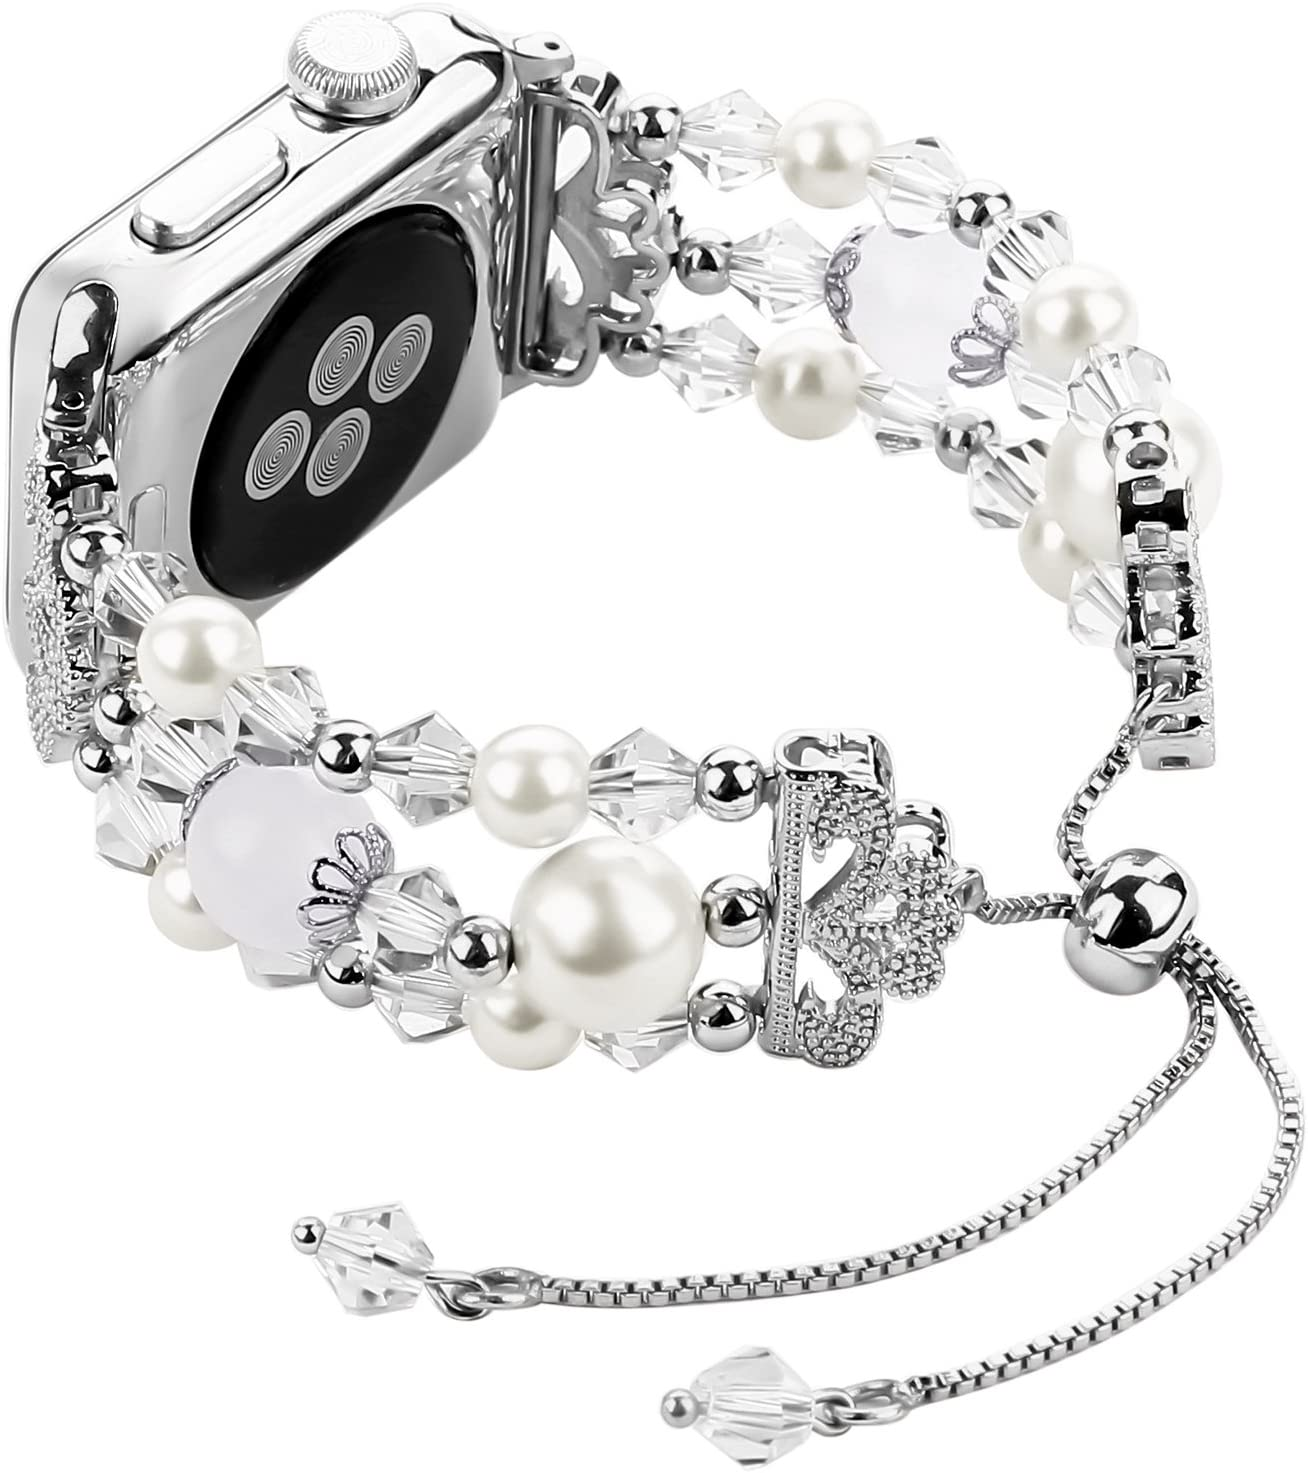 TOMAZON Bracelet Bands Compatible for Apple Watch 38mm 40mm iWatch Band SE Series 6/5/4/3/2/1, Handmade Crystal Pearl Jewelry Adjustable Wristbands for Women Female, White